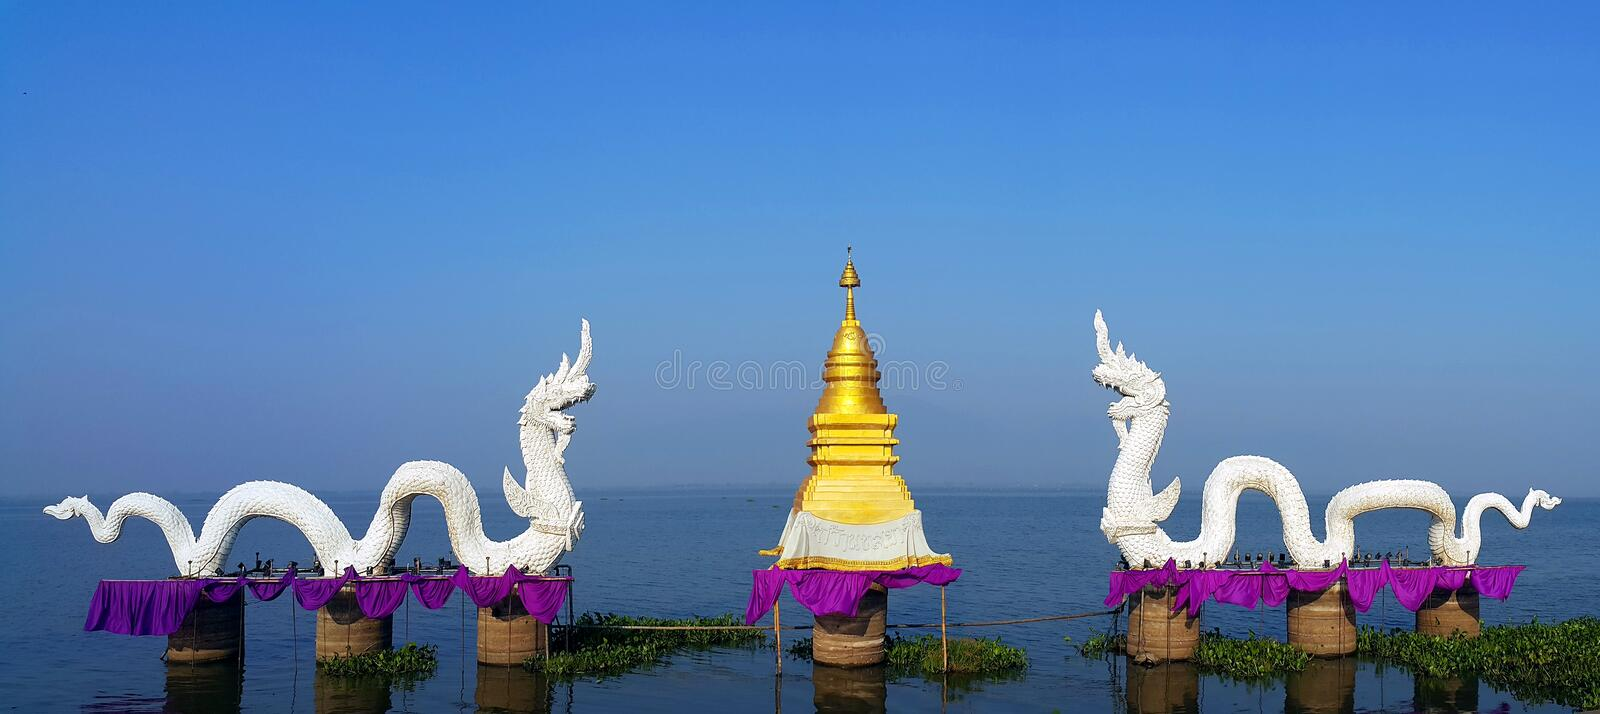 Couple of white serpent king or king of naga statues with golen stupa at Kwan phayao, Th stock photos